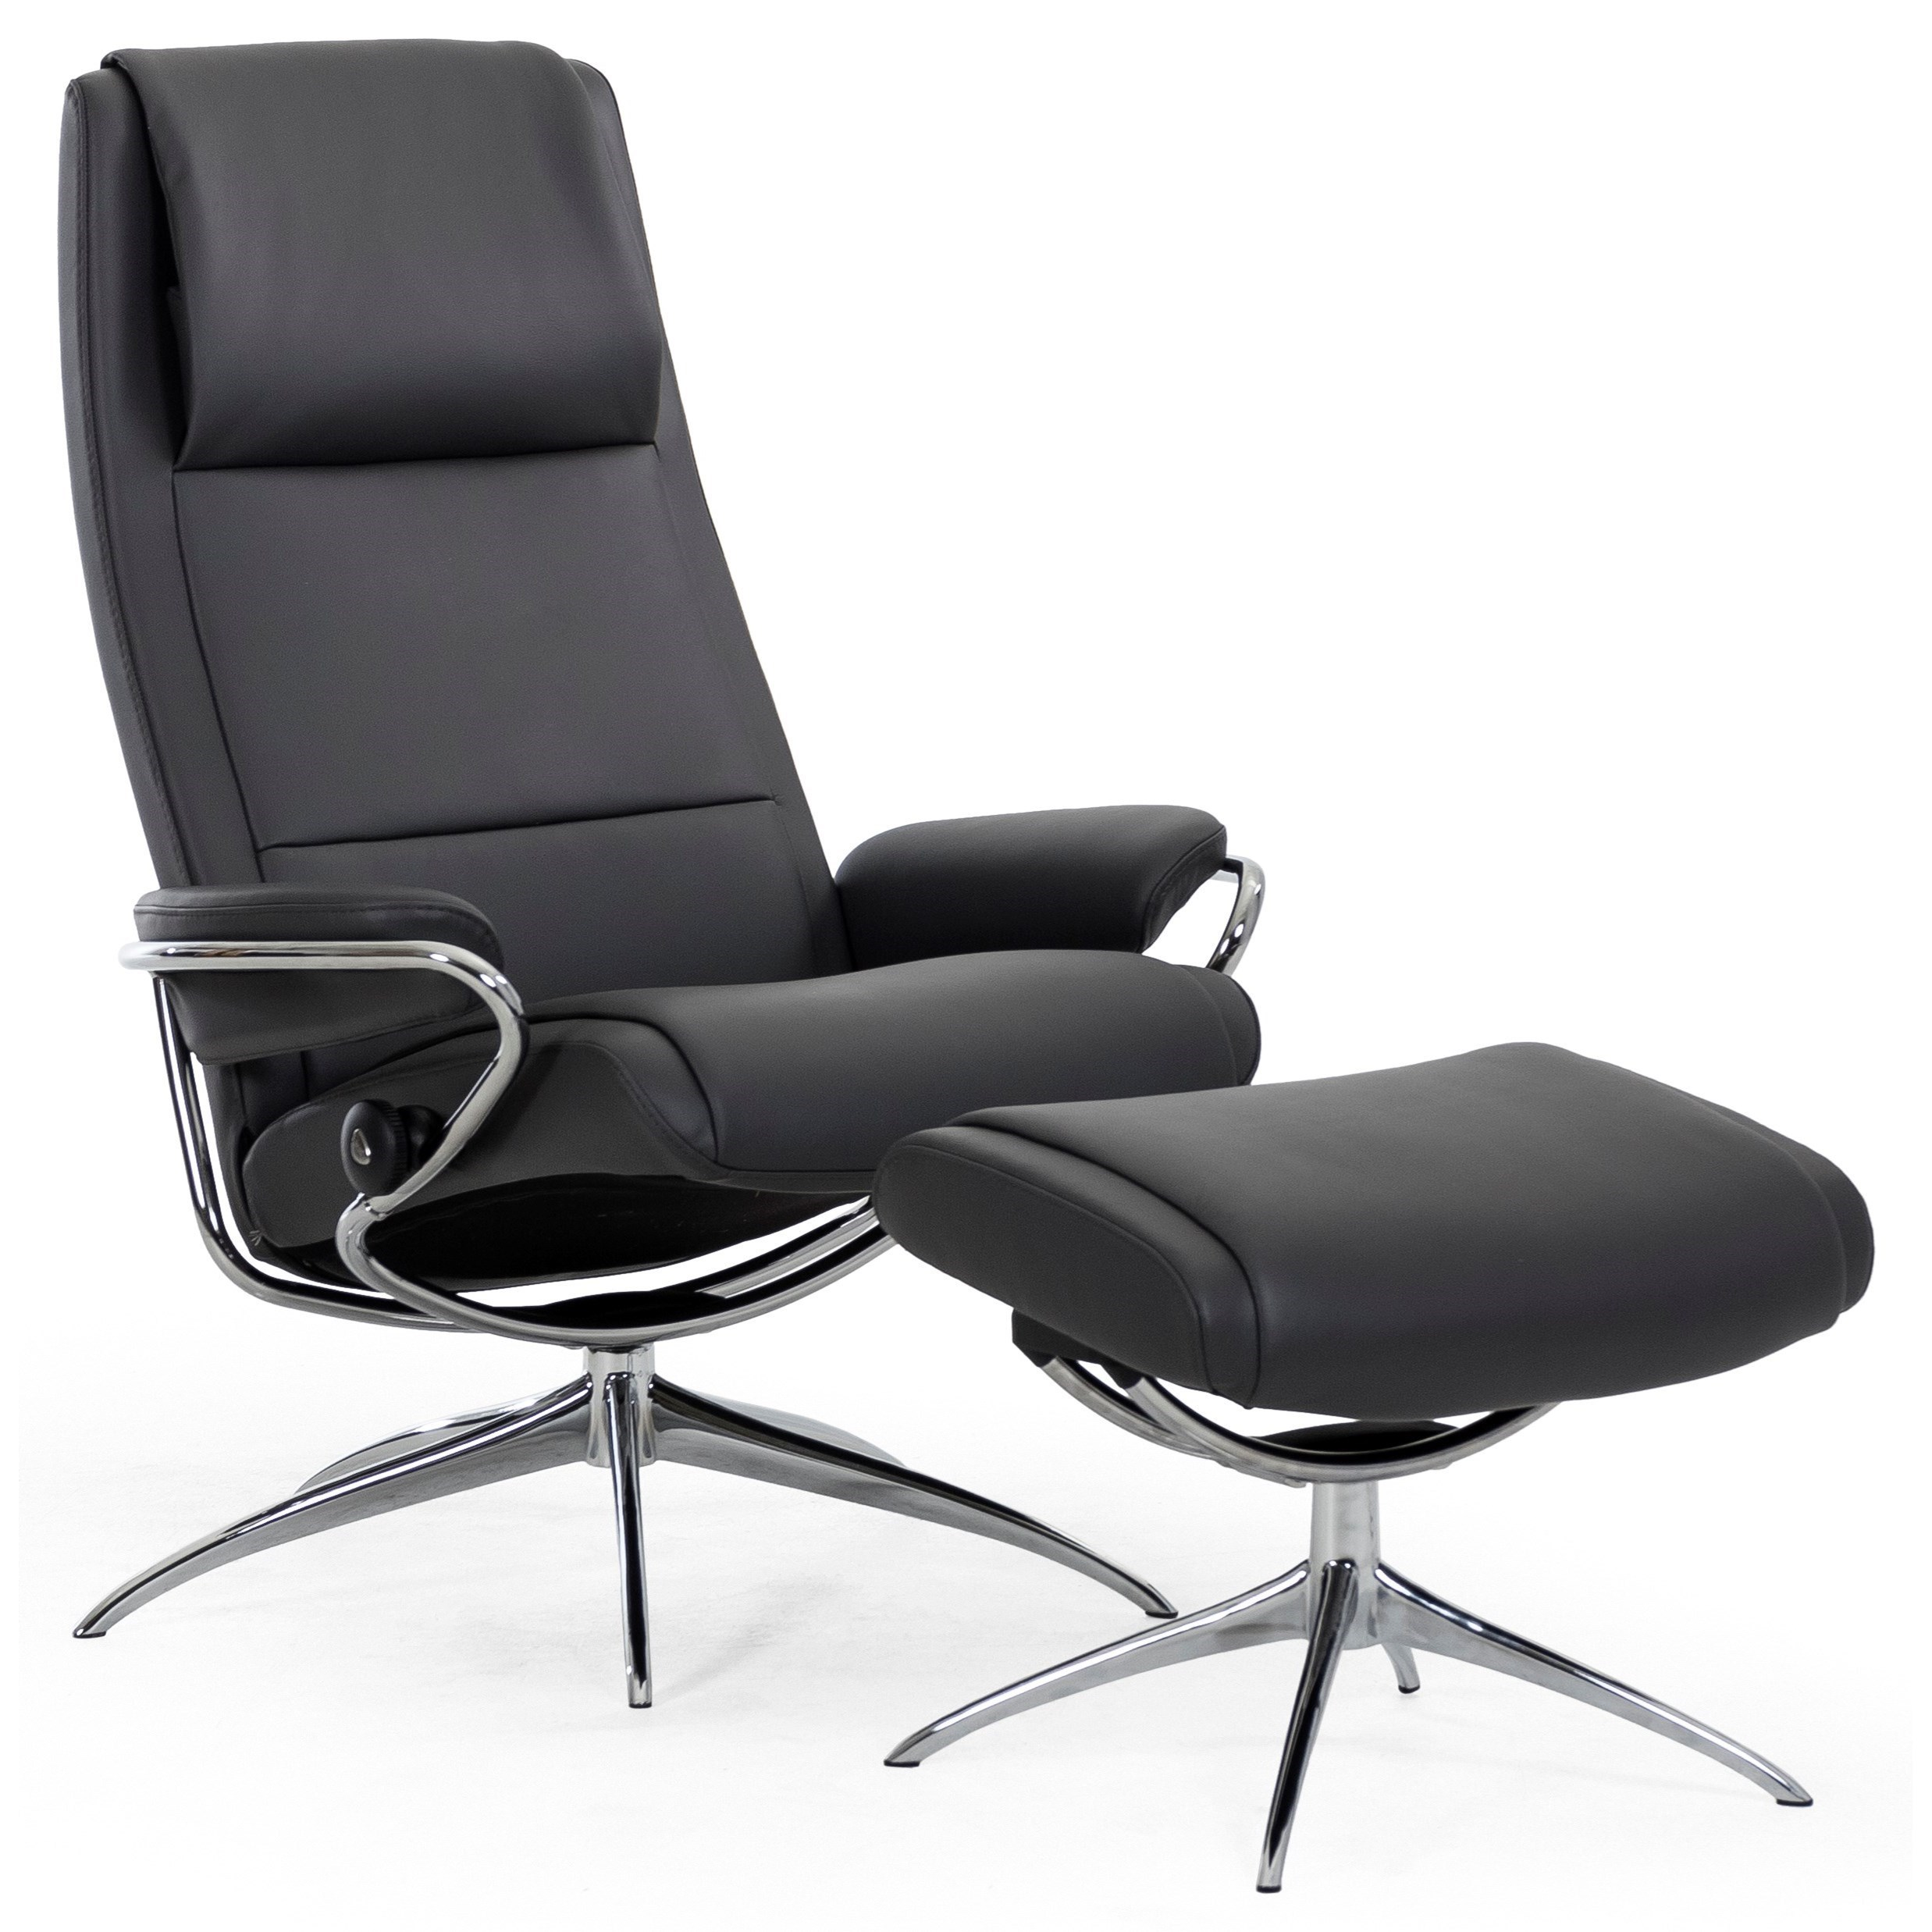 Paris High Back Recliner And Ottoman With Standard Star Base By Stressless